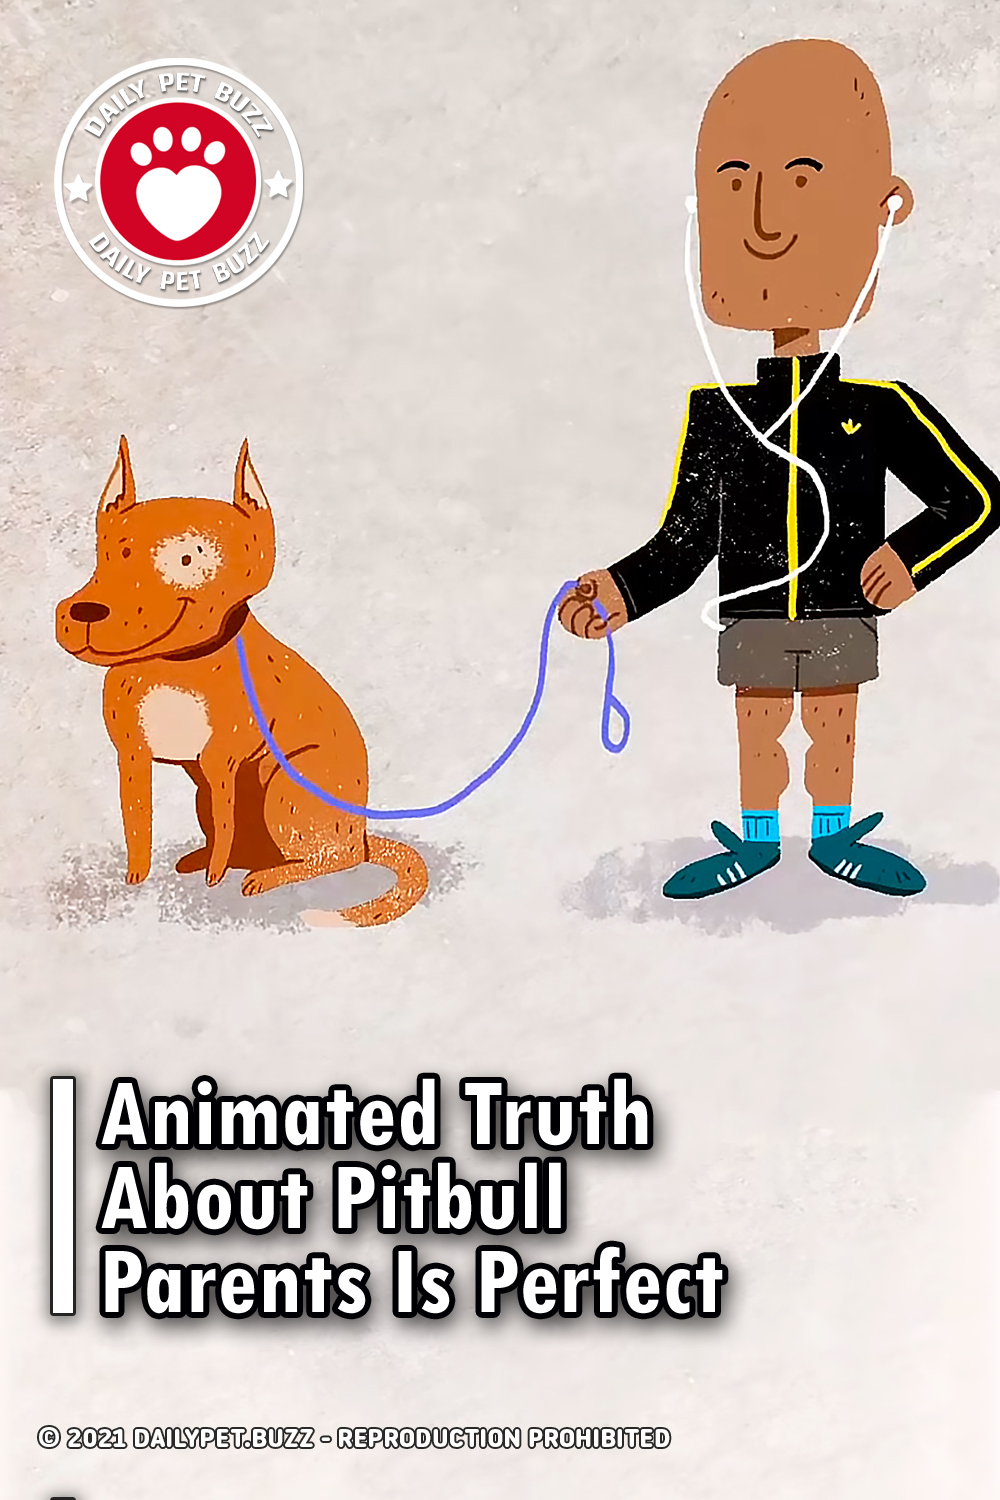 Animated Truth About Pitbull Parents Is Perfect